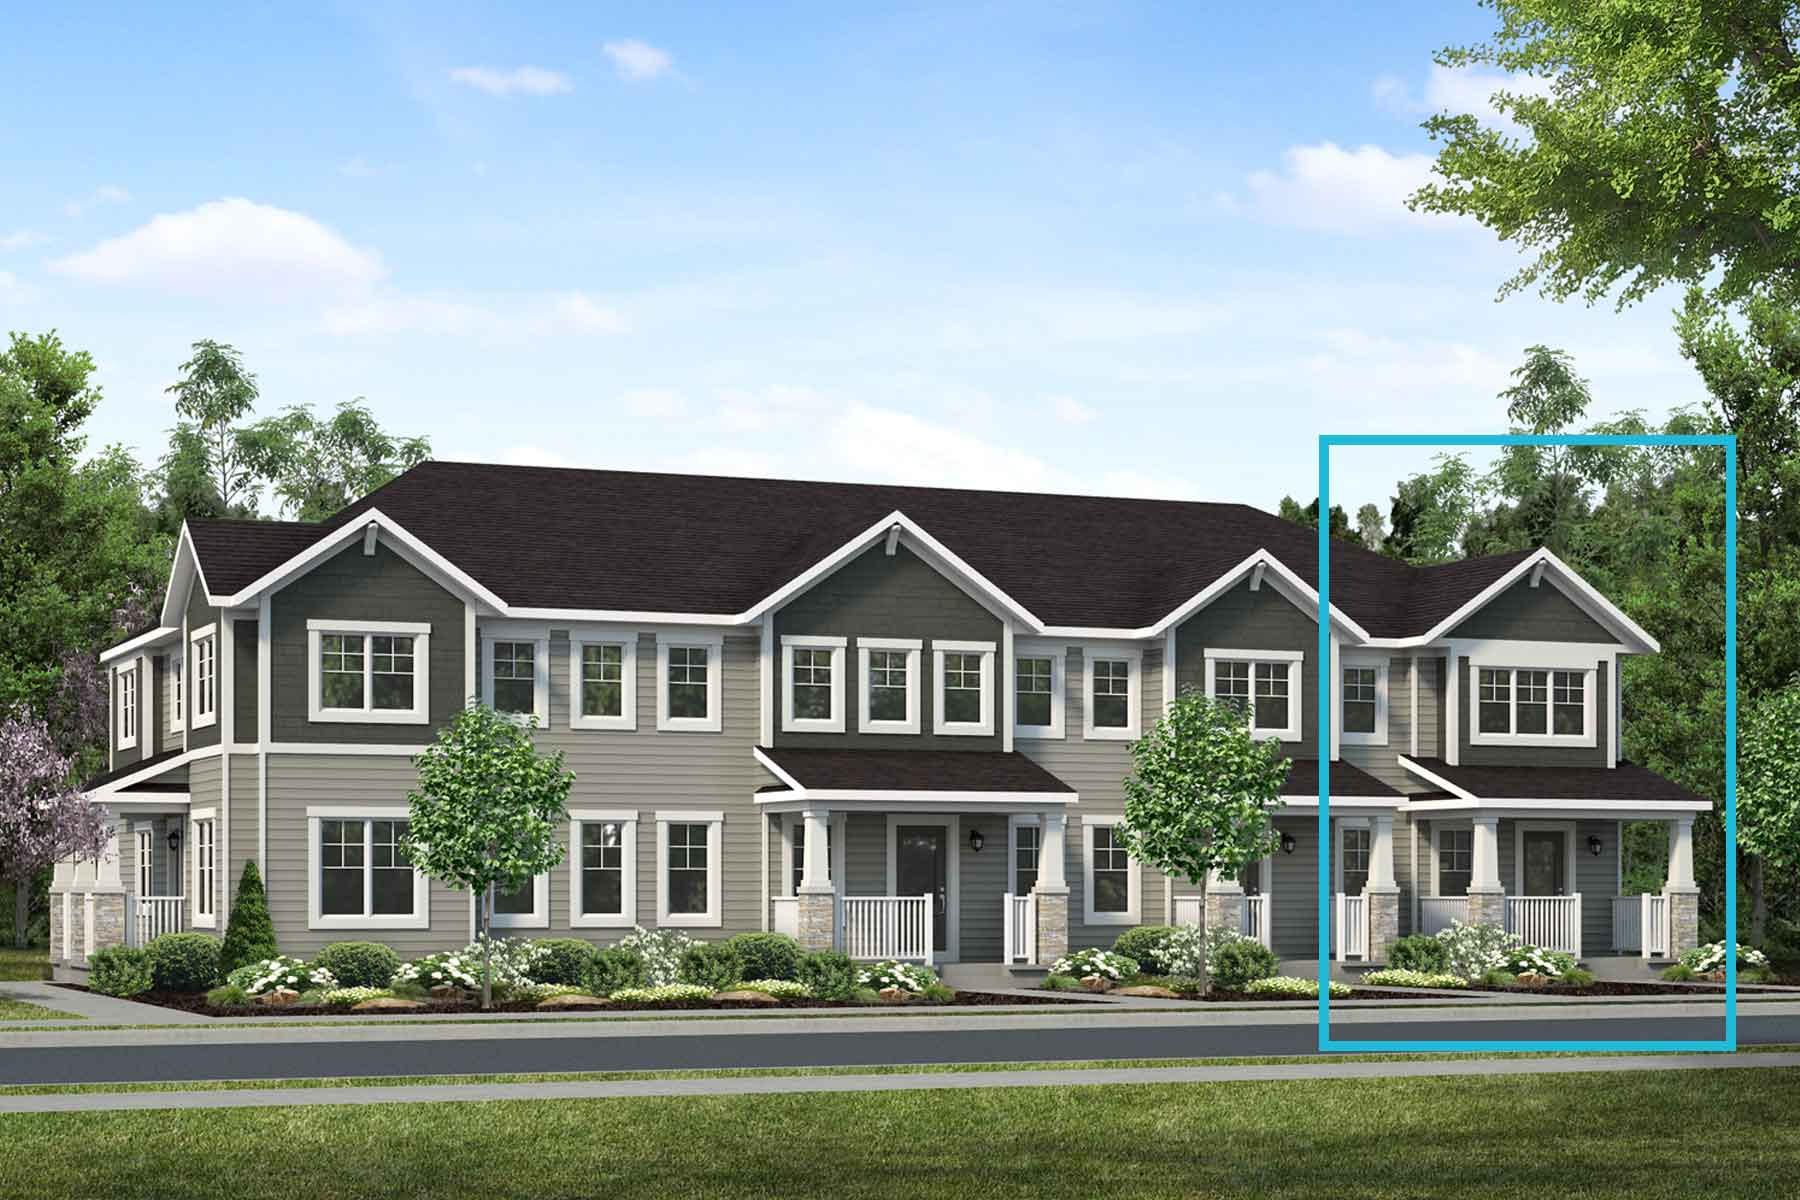 Vanier End Plan TownHomes at Yorkville in Calgary Alberta by Mattamy Homes